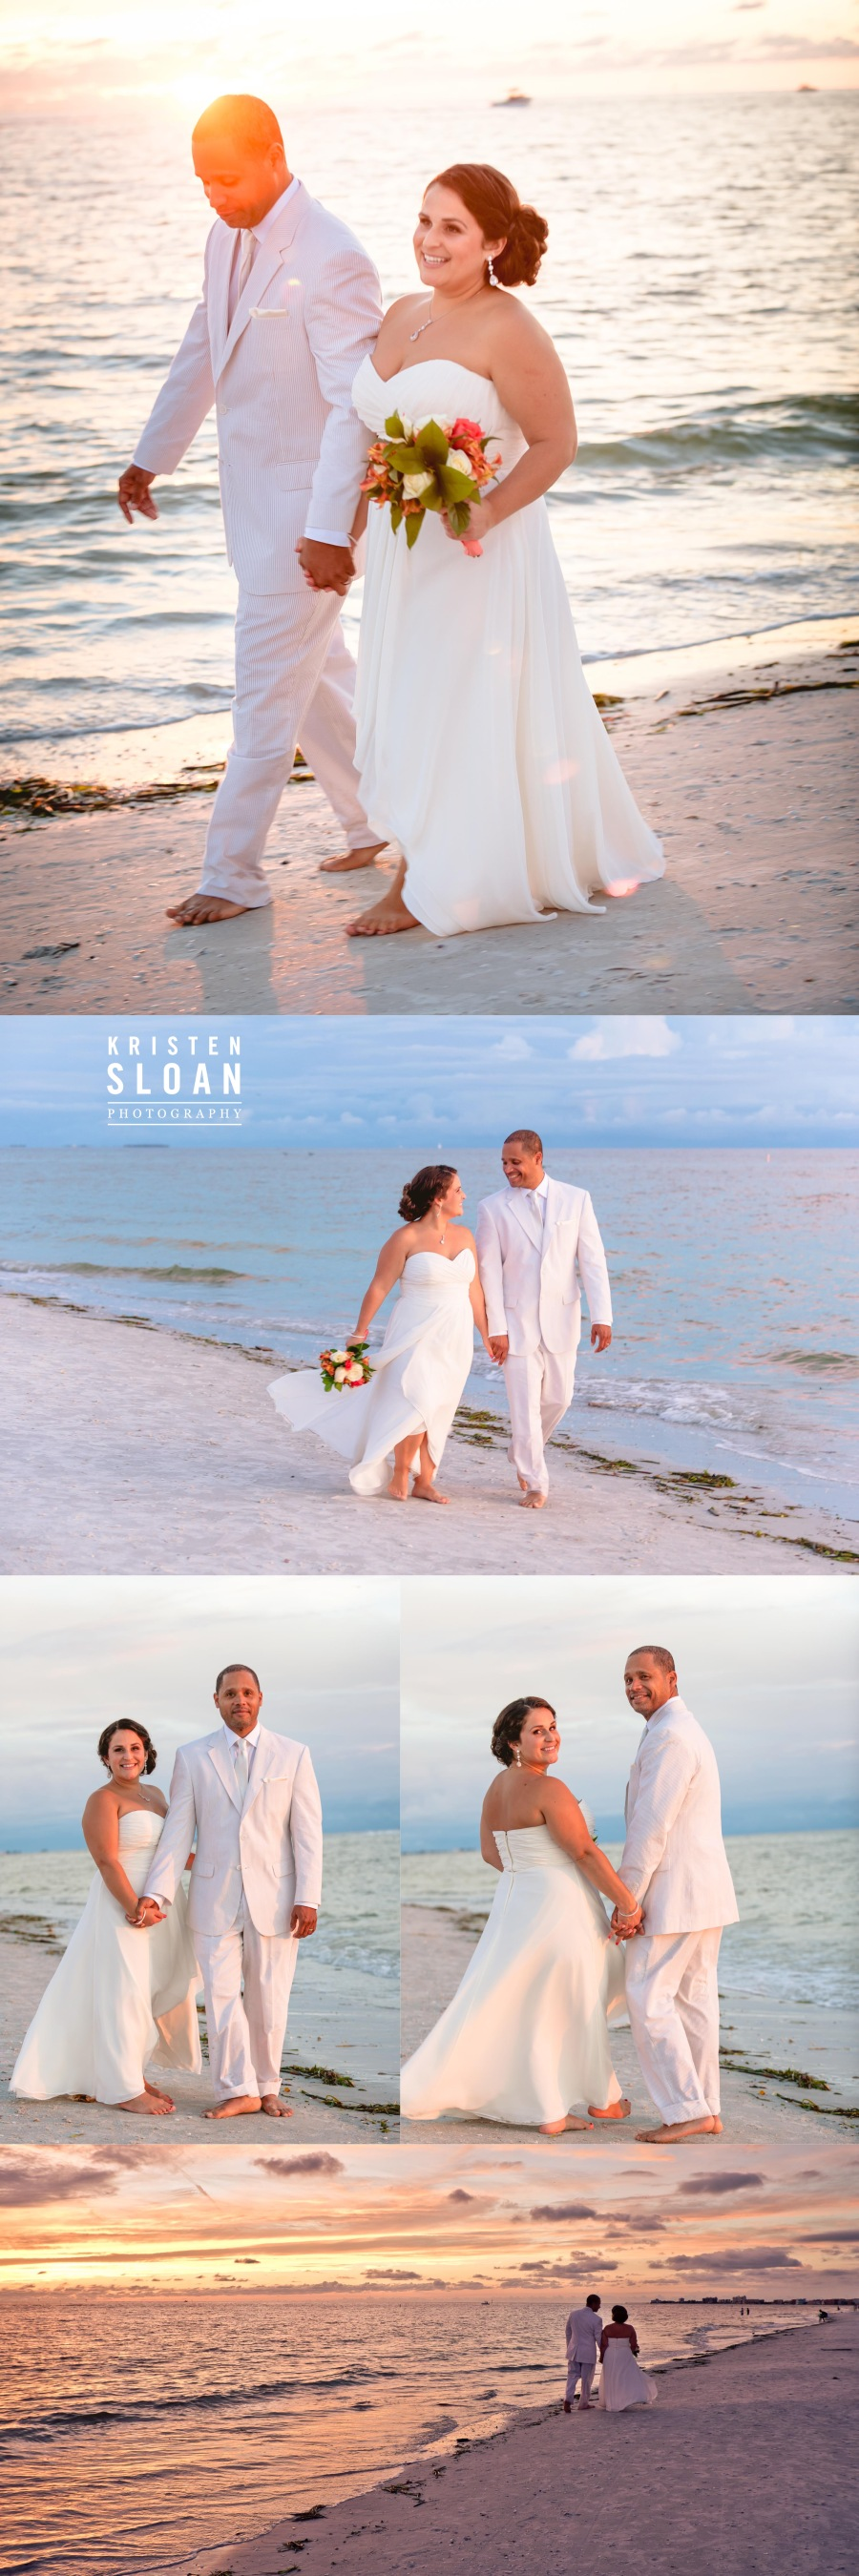 Sunset Vistas Treasure Island Florida Wedding Photographer